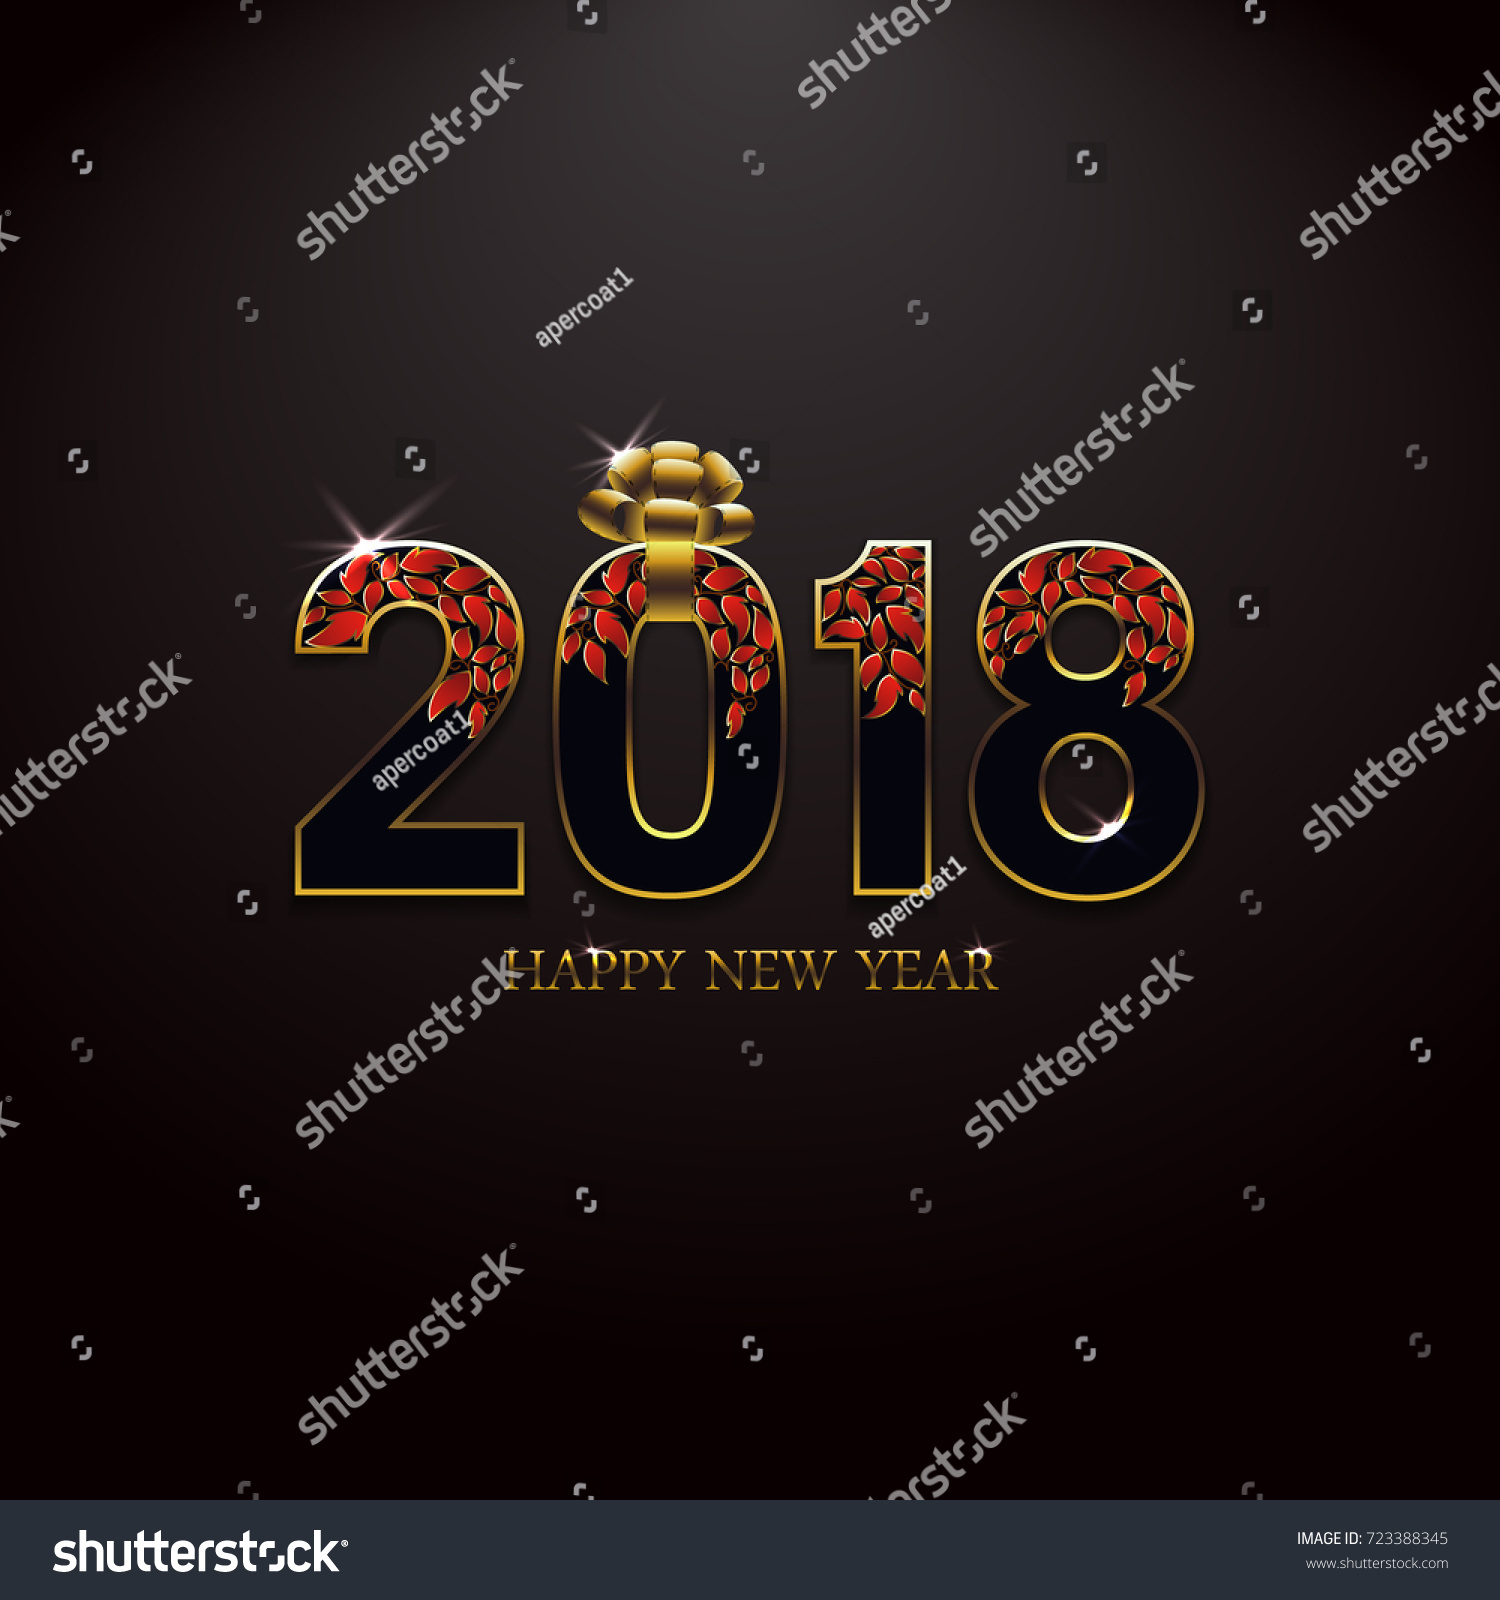 happy new year 2018 celebration luxurious gift card greeting raster illustration banner with golden decoration